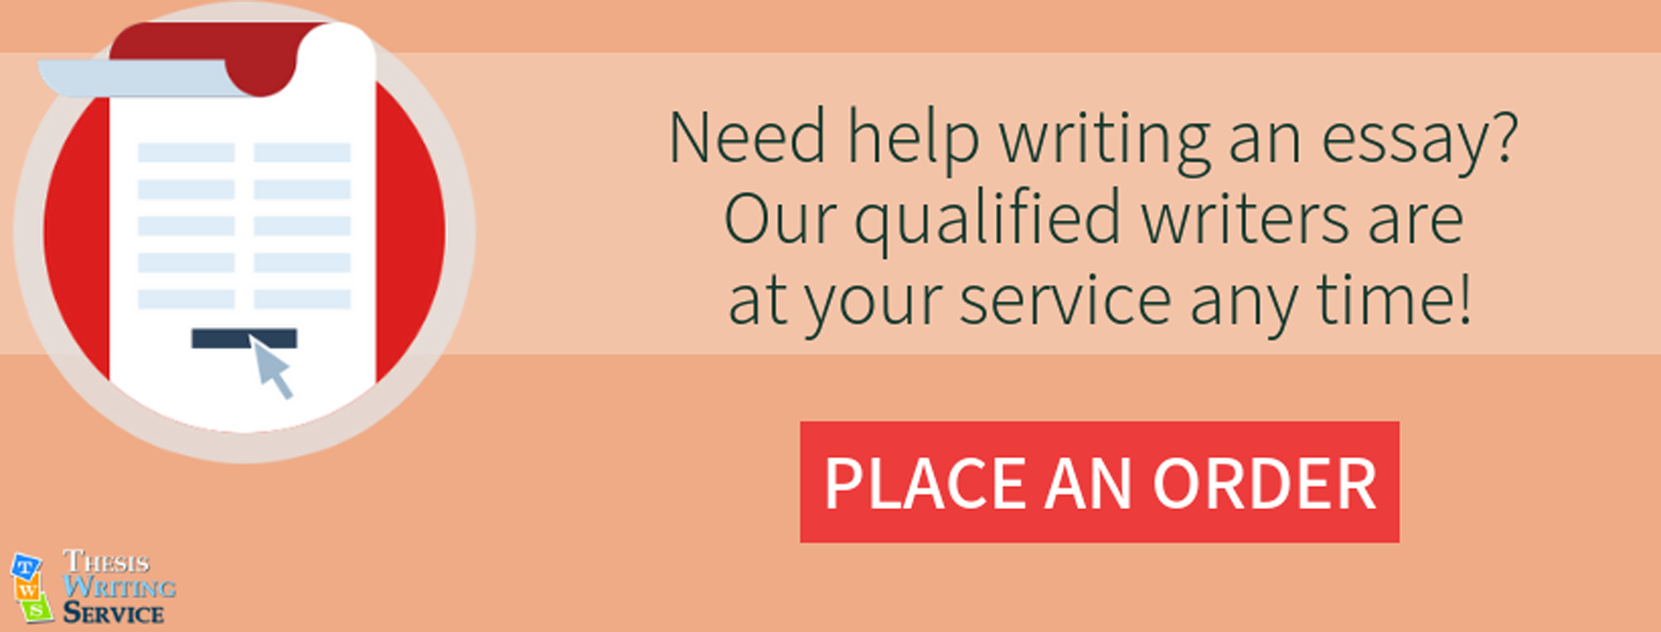 Dissertation writing services malaysia proposal